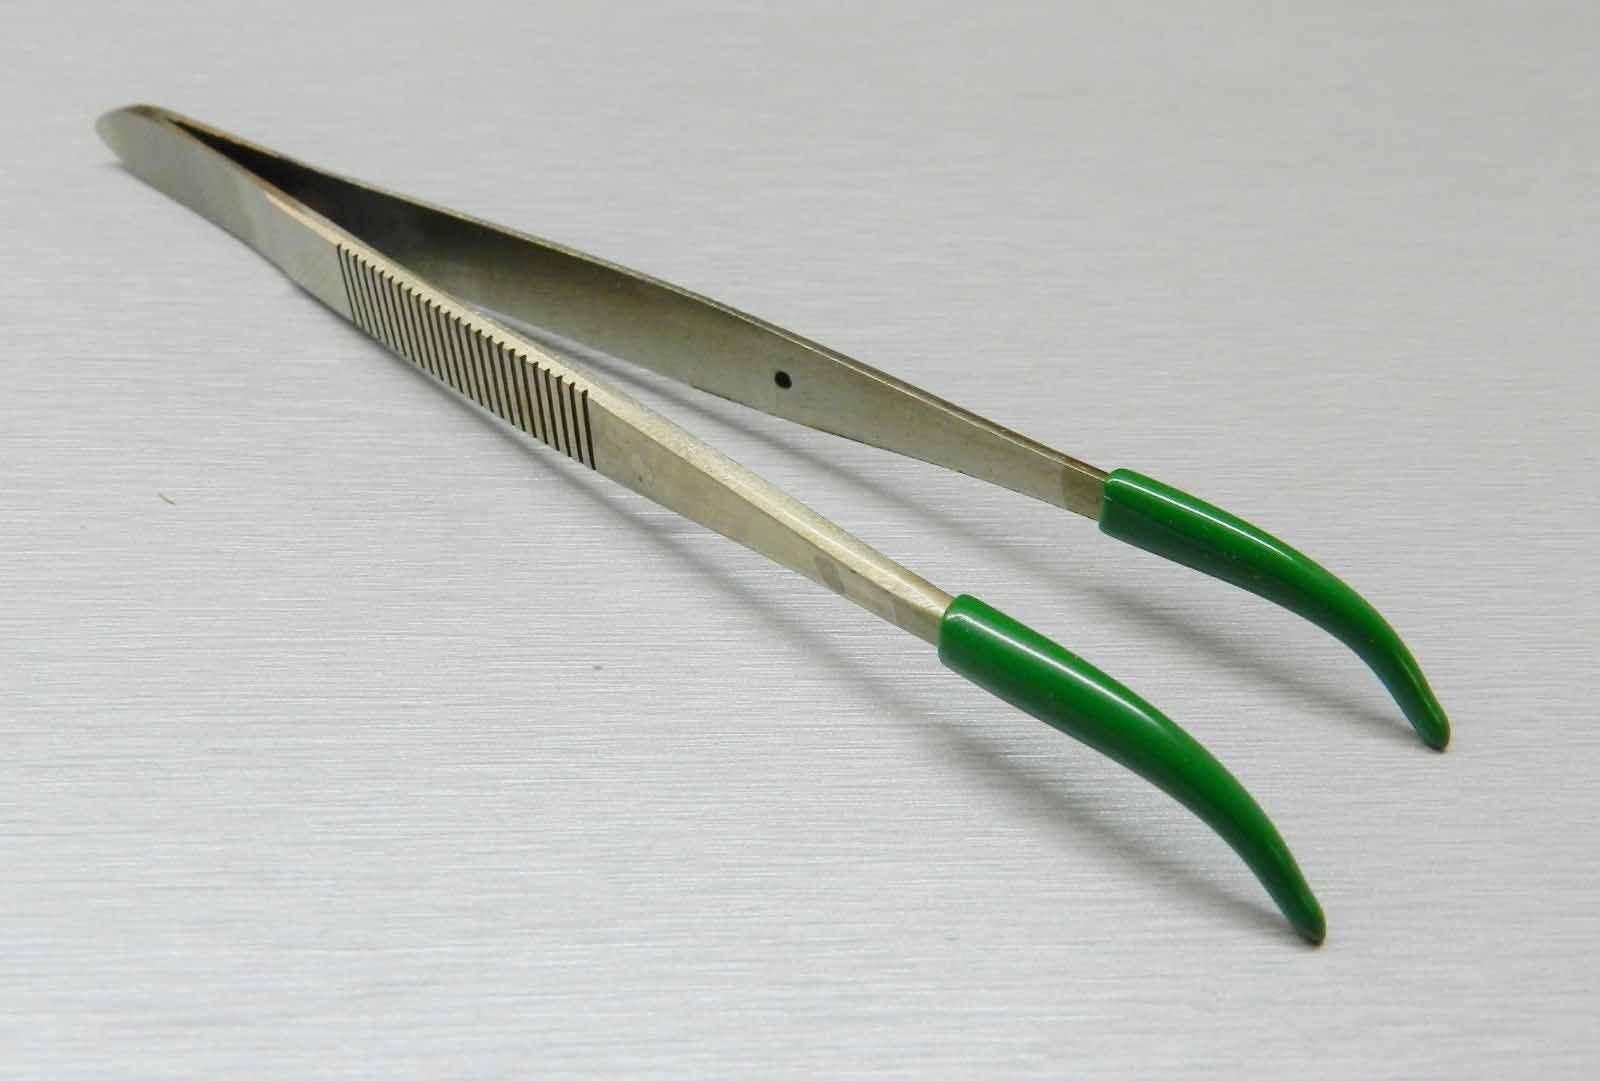 ACE Tweezers Curved Tip Rubber Tips PVC Coated Curved Tweezer Jewelry Hobby Craft by ACE (Image #7)